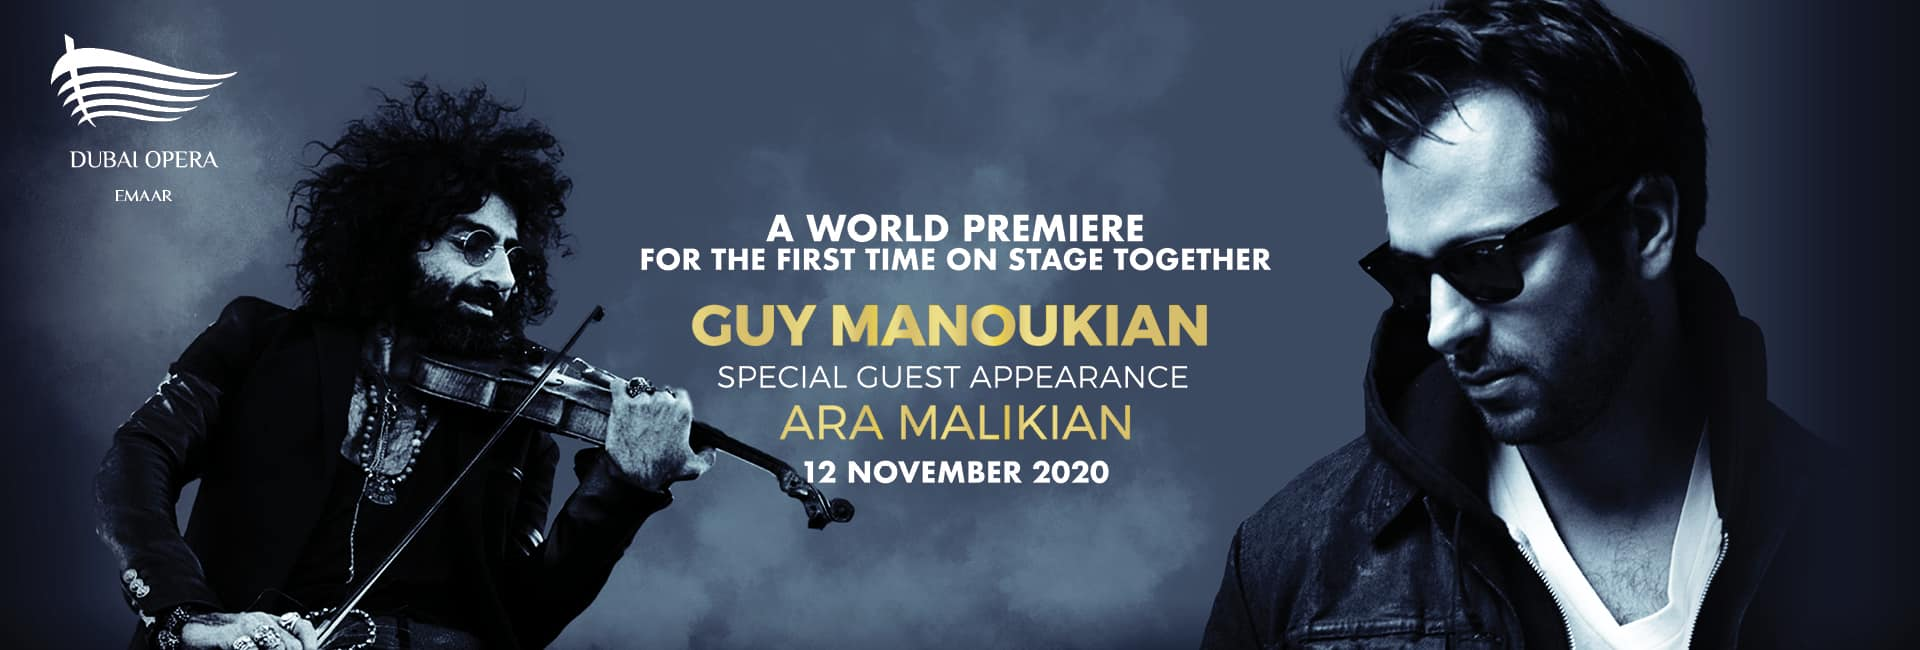 Guy Manoukian and Ara Malikian at Dubai Opera 2020